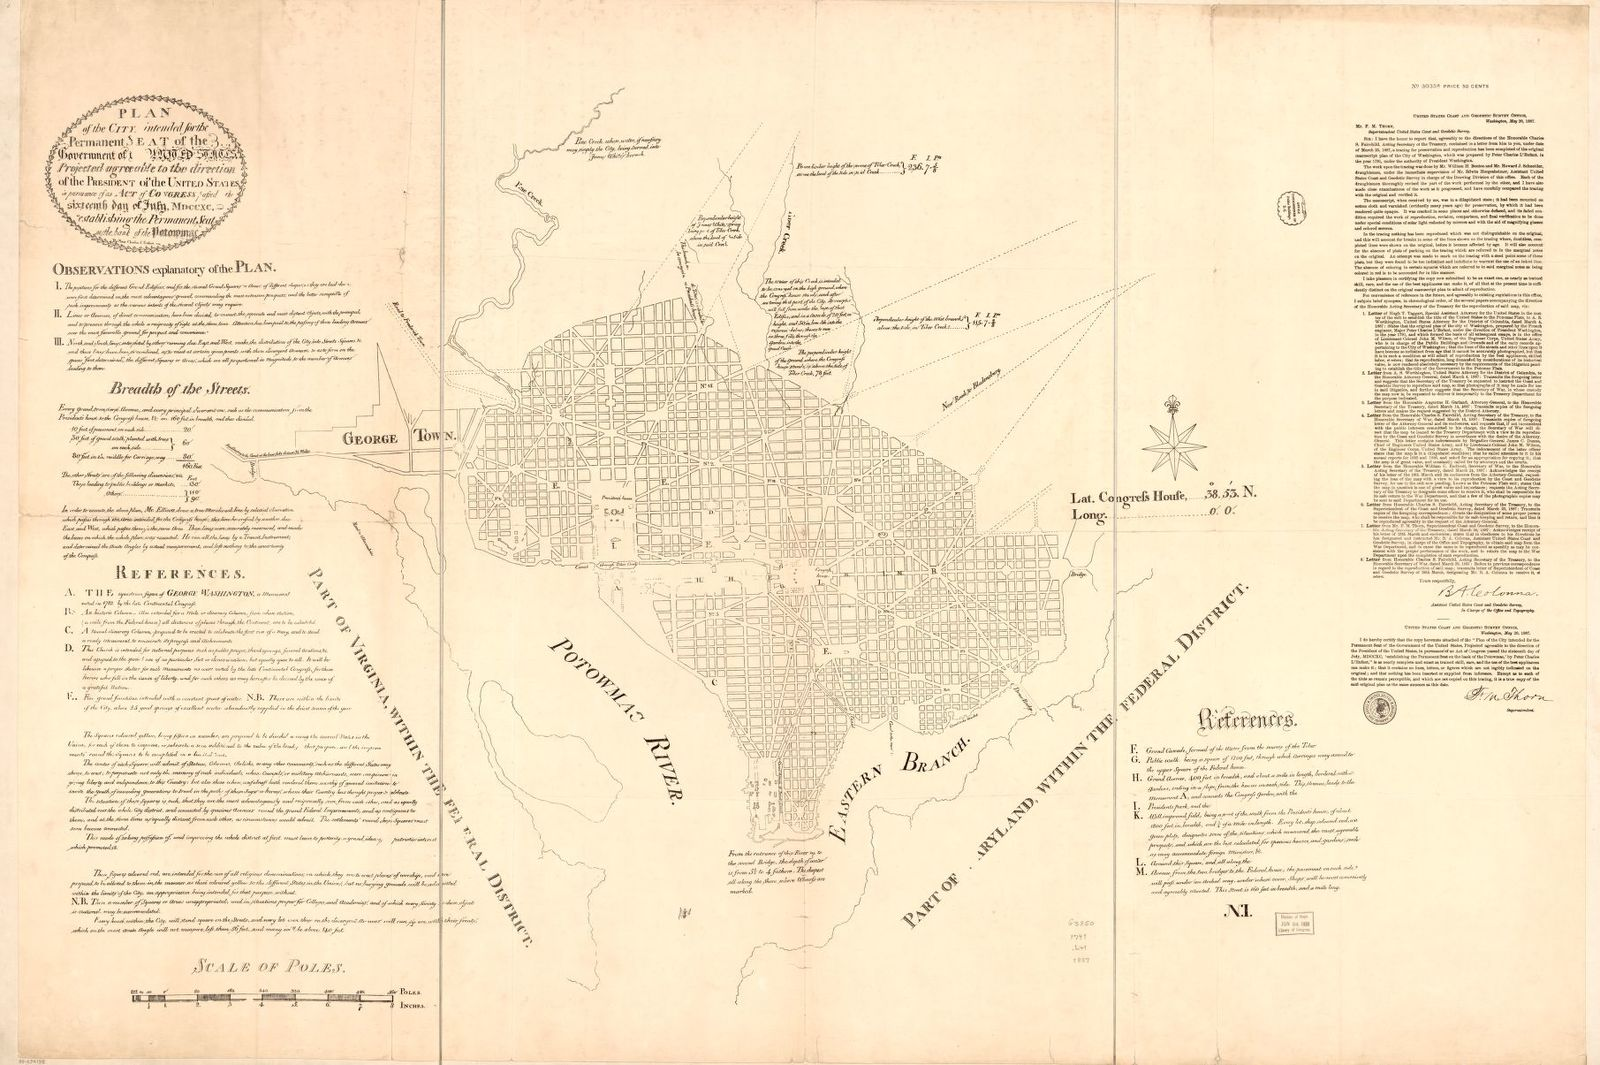 """Plan of the city intended for the permanent seat of the government of t[he] United States : projected agreeable to the direction of the President of the United States, in pursuance of an act of Congress passed the sixteenth day of July, MDCCXC, """"establishing the permanent seat on the bank of the Potowmac"""" : [Washington D.C.] /"""